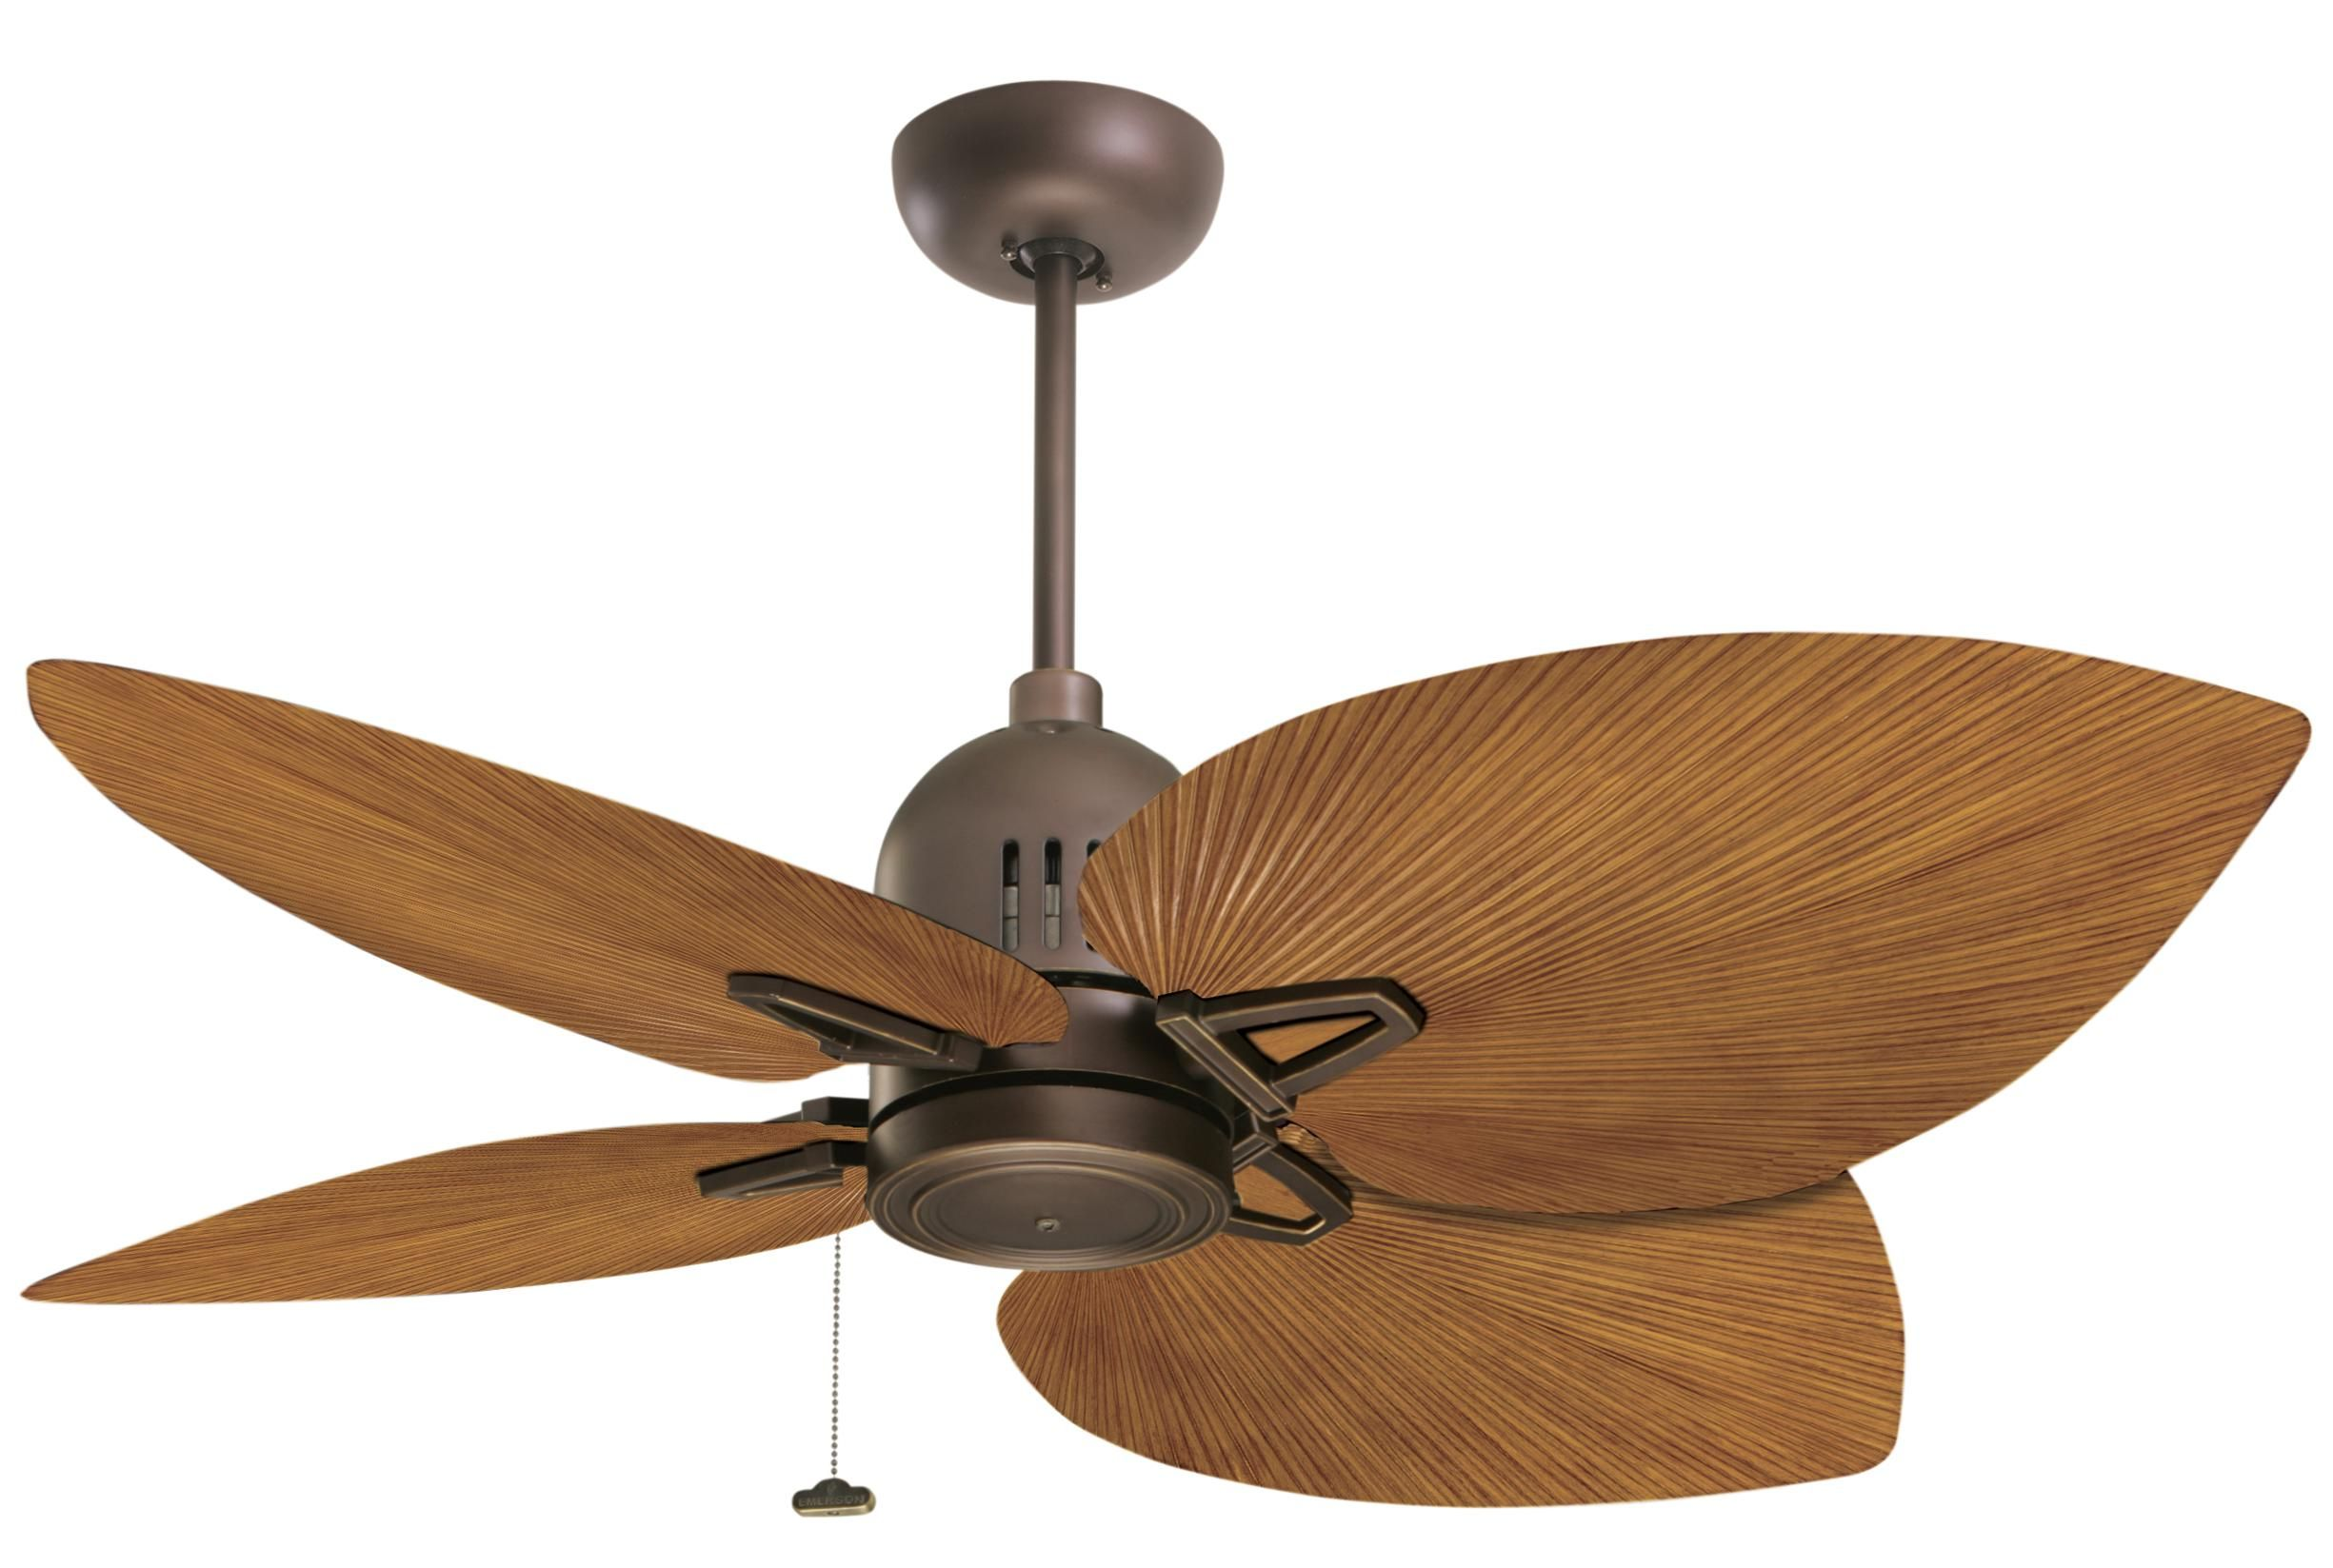 Shown In Picture Emerson Ceiling Fan Model Cf3600orh B83pcn Click On Picture To Close Ceiling Fan Outdoor Ceiling Fans Ceiling Fan With Light